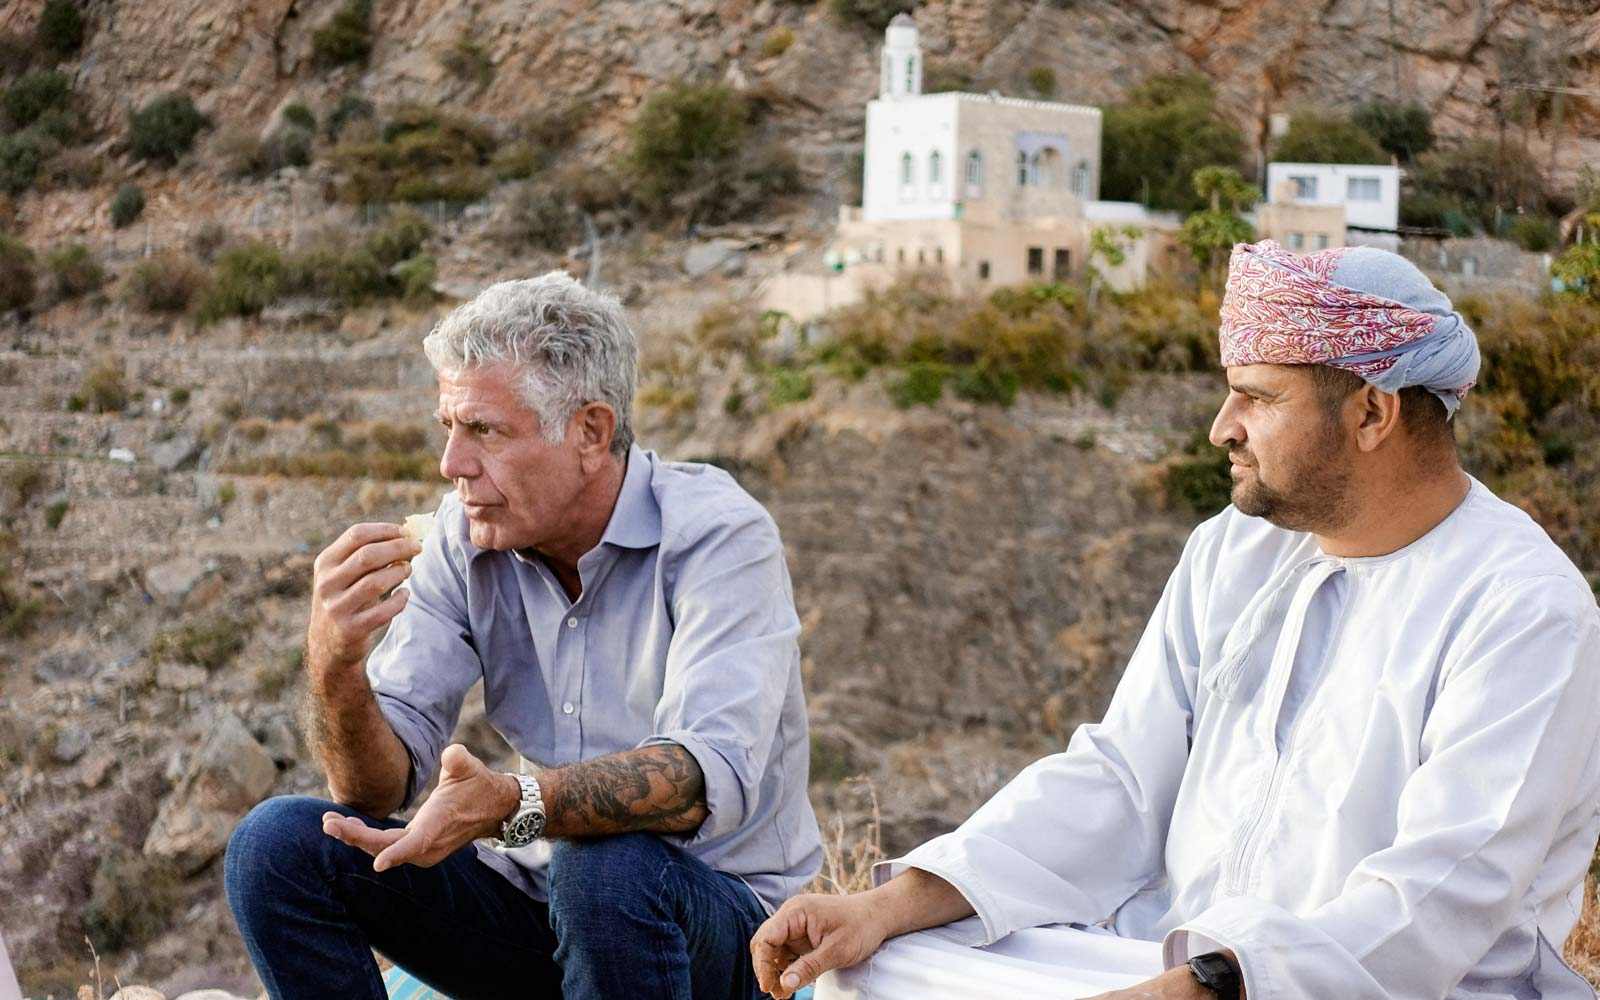 Anthony Bourdain will make you add Oman to your travel bucket list